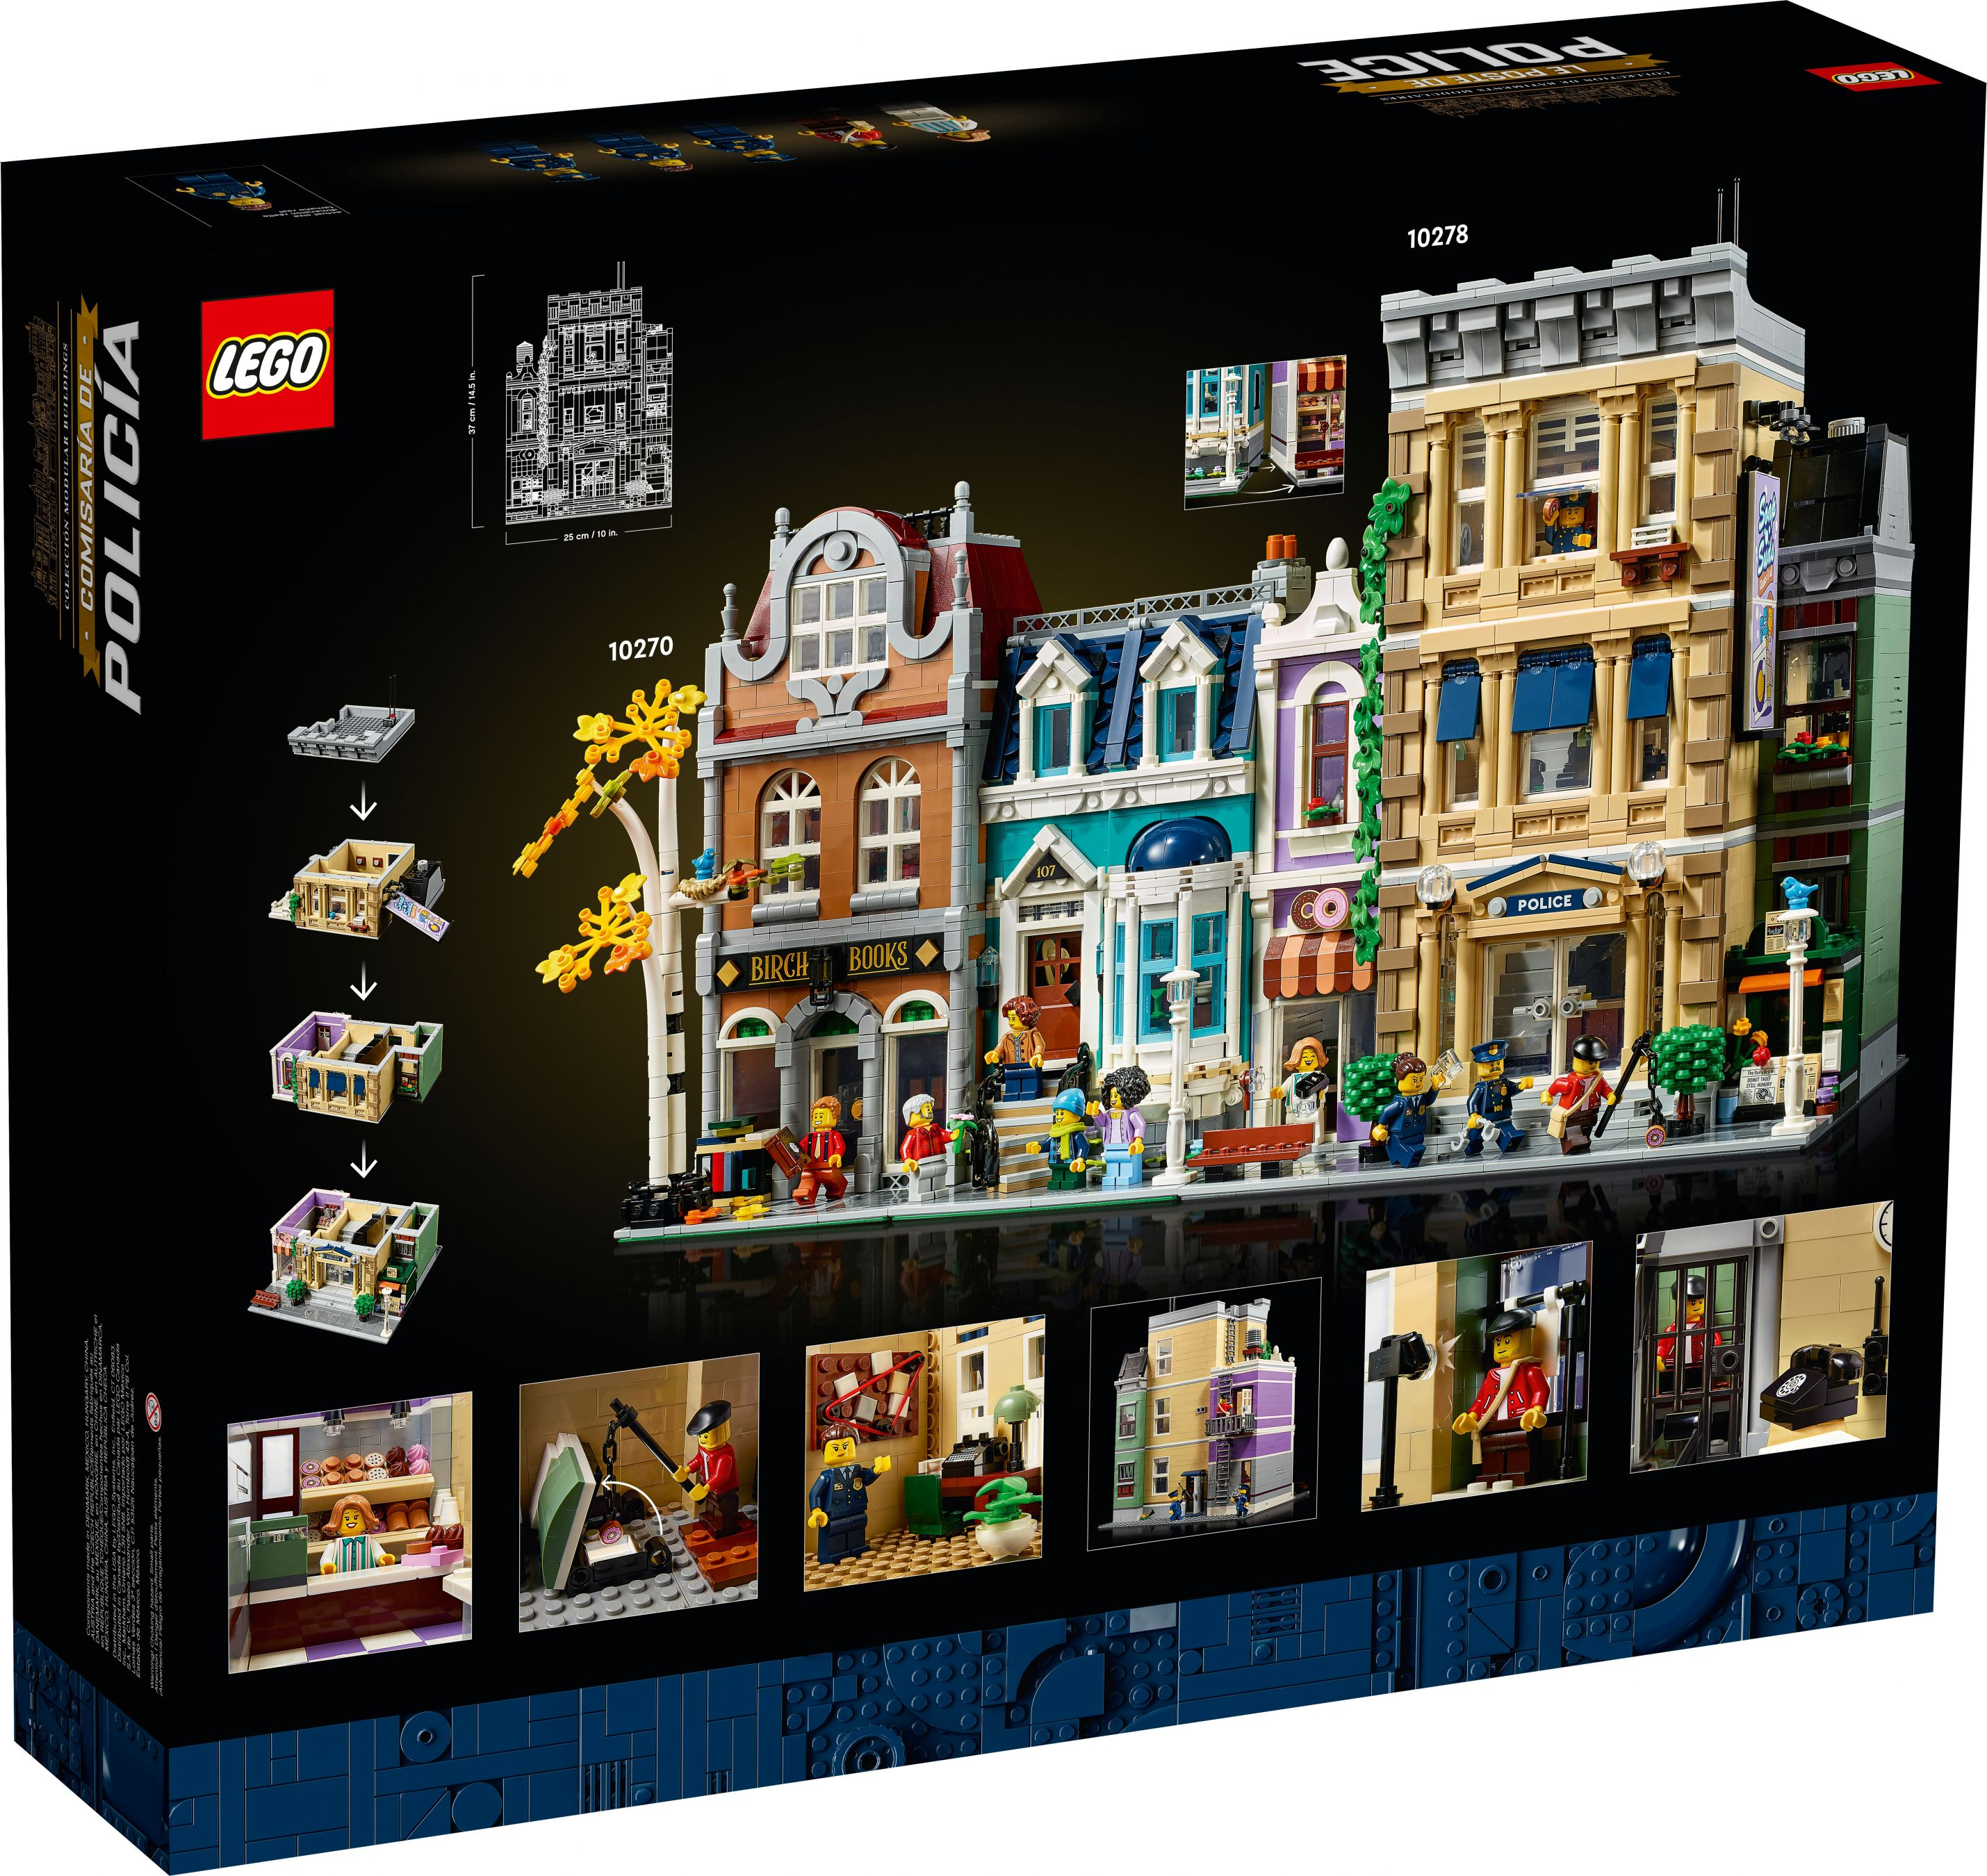 LEGO Advanced Models 10278 Polizeistation LEGO_10278_alt16.jpg